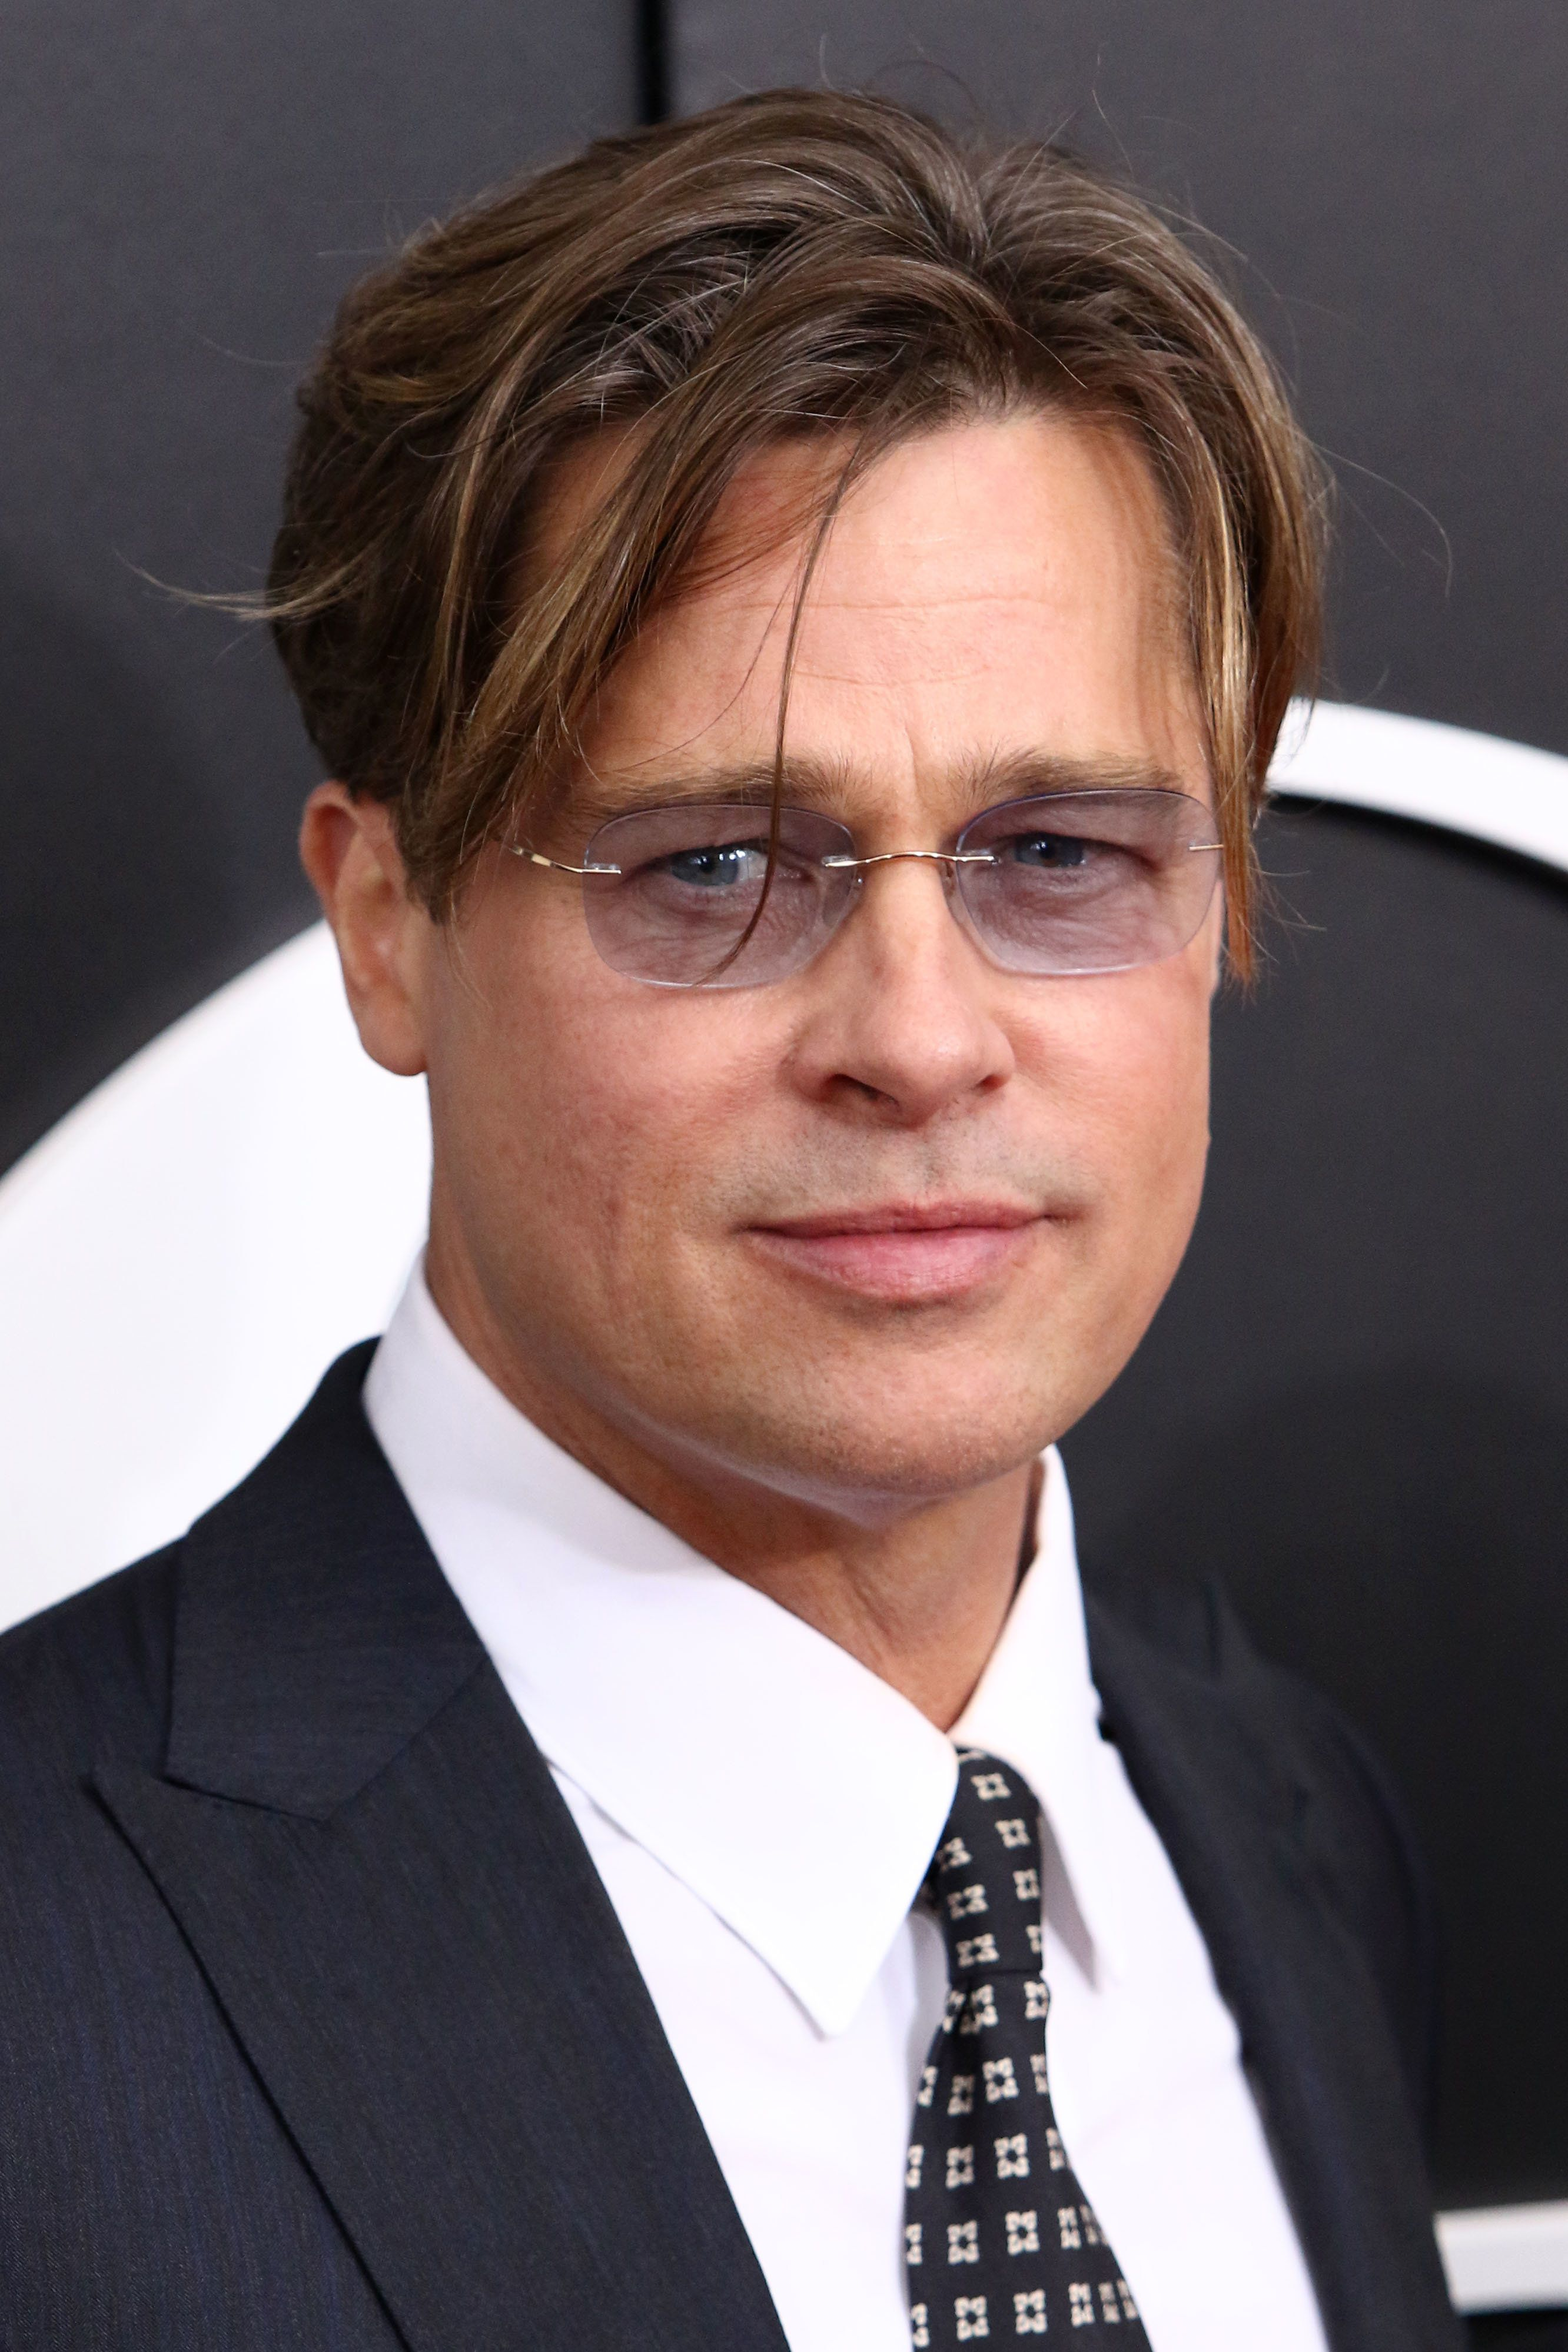 Brad Pitt Cleared Of Child Abuse Allegations As Investigation Comes To A